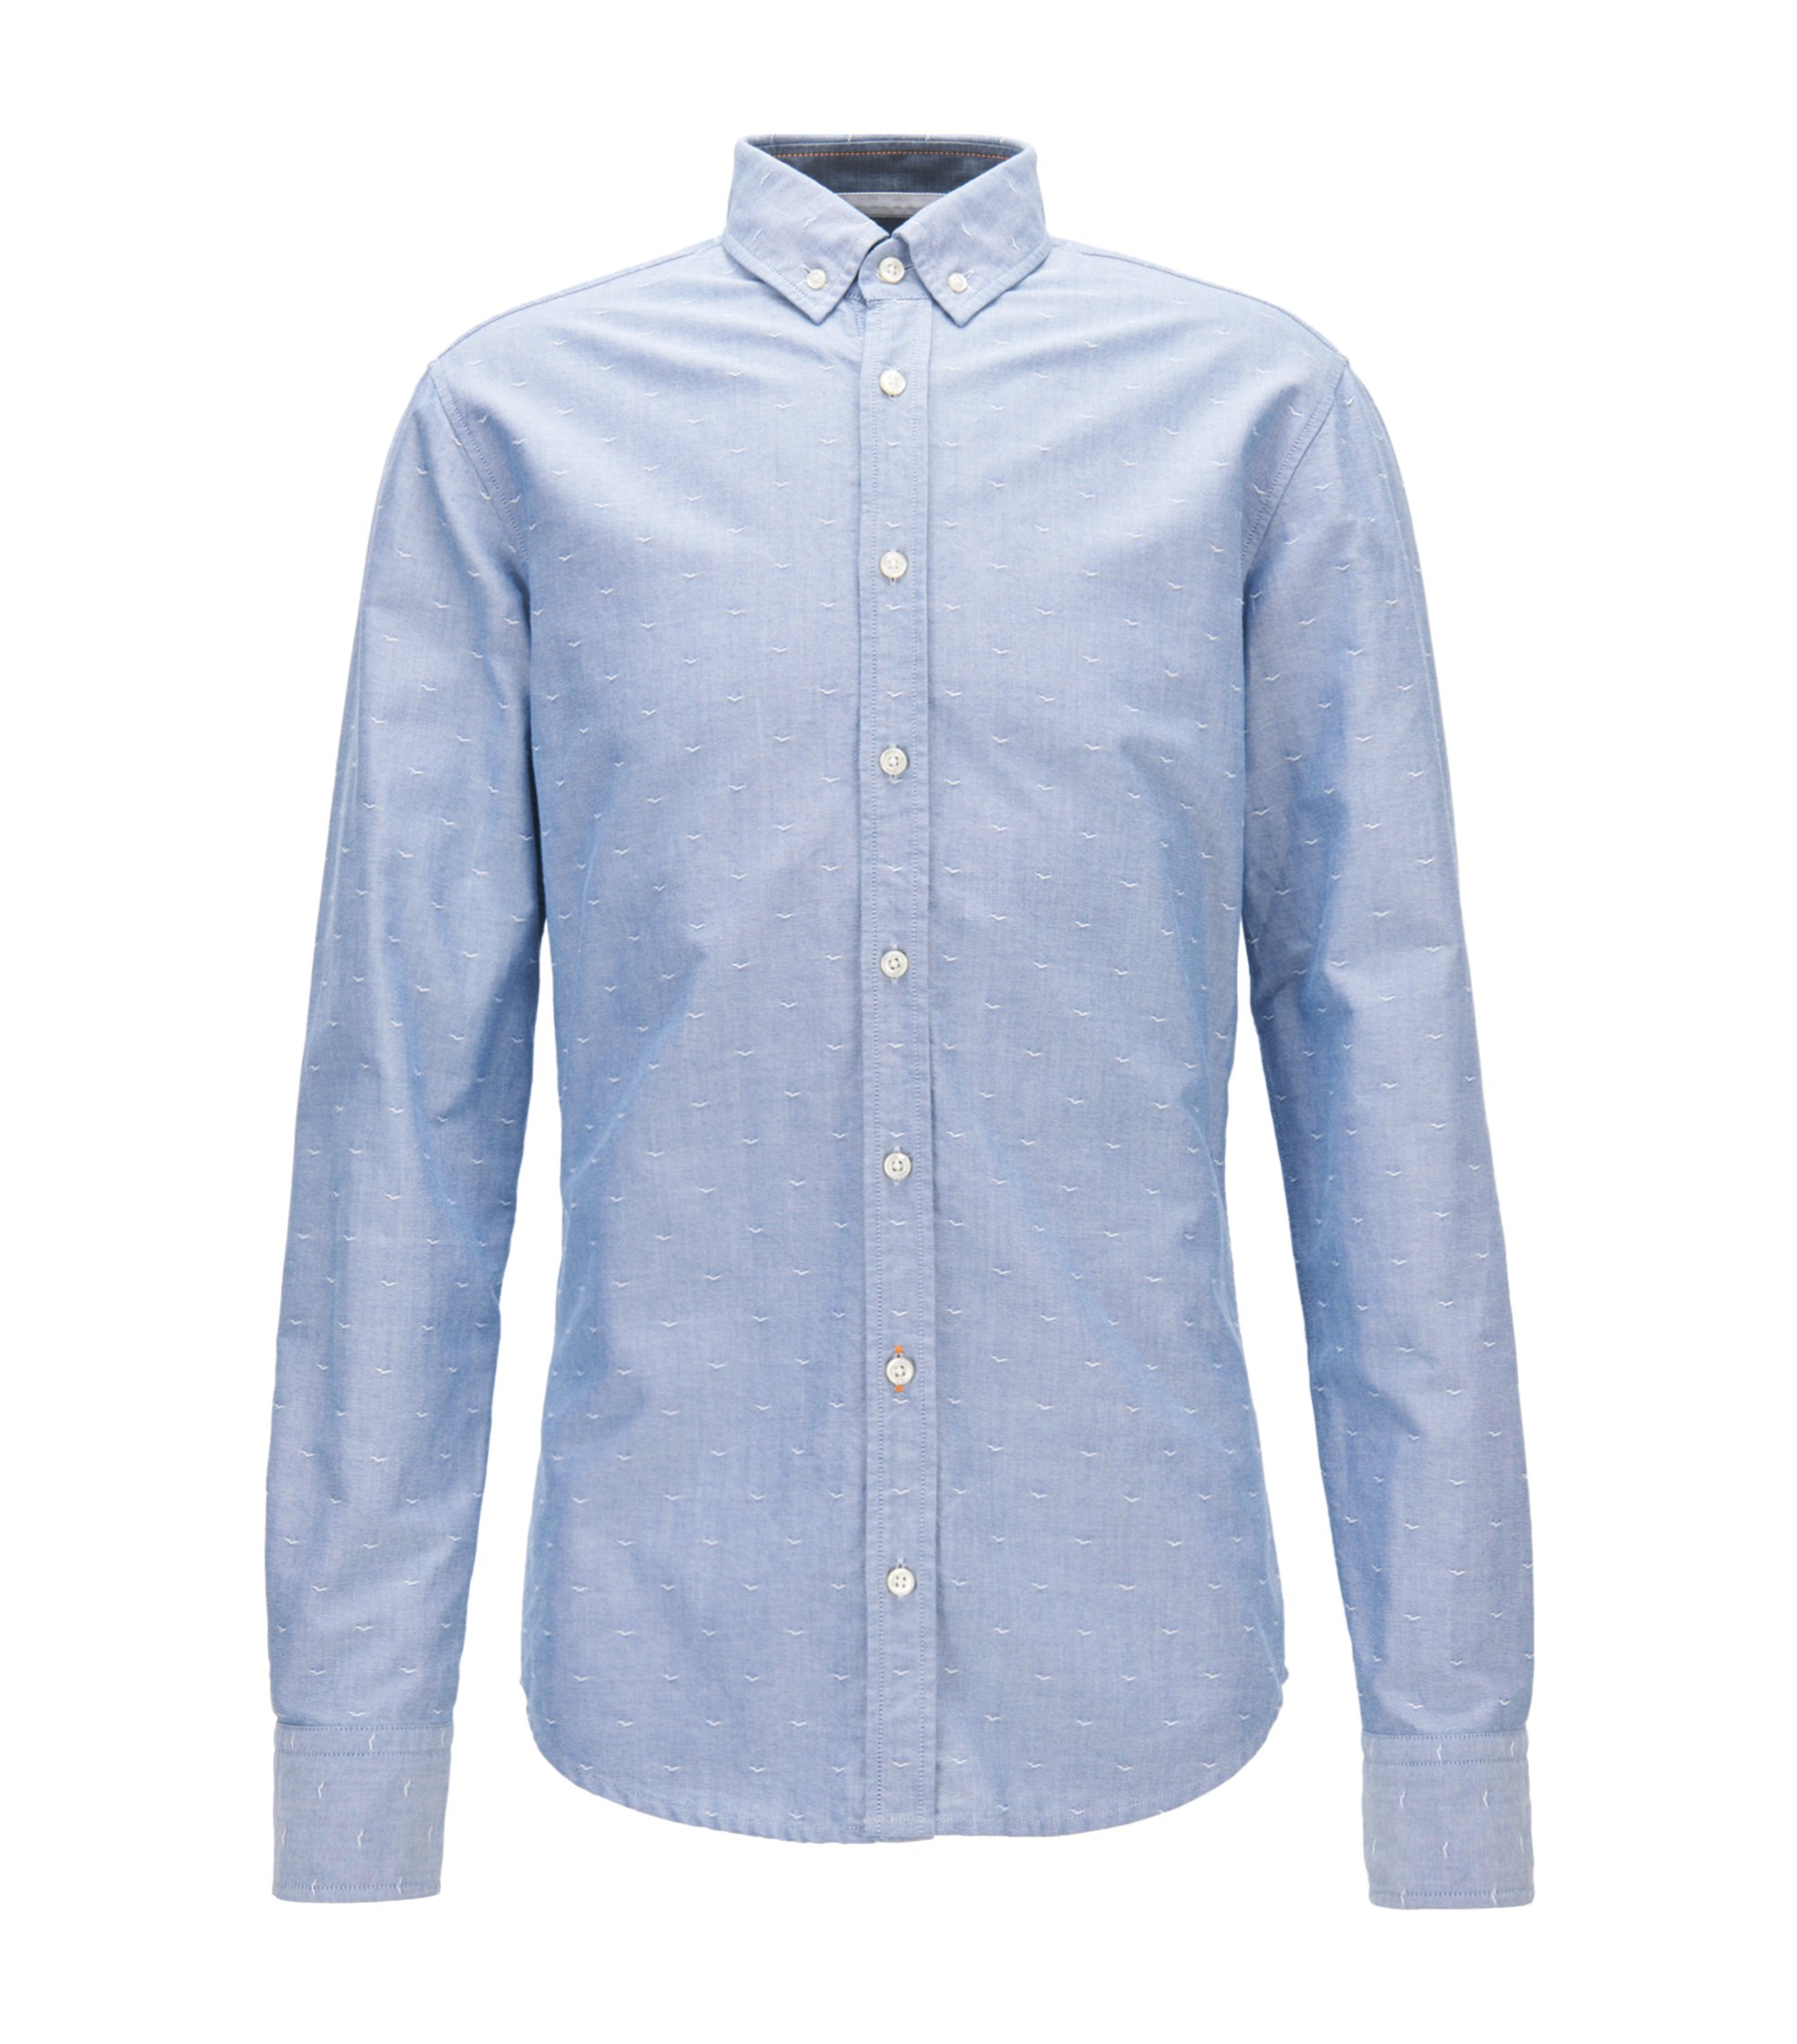 Camicia slim fit in cotone dobby Oxford, Celeste